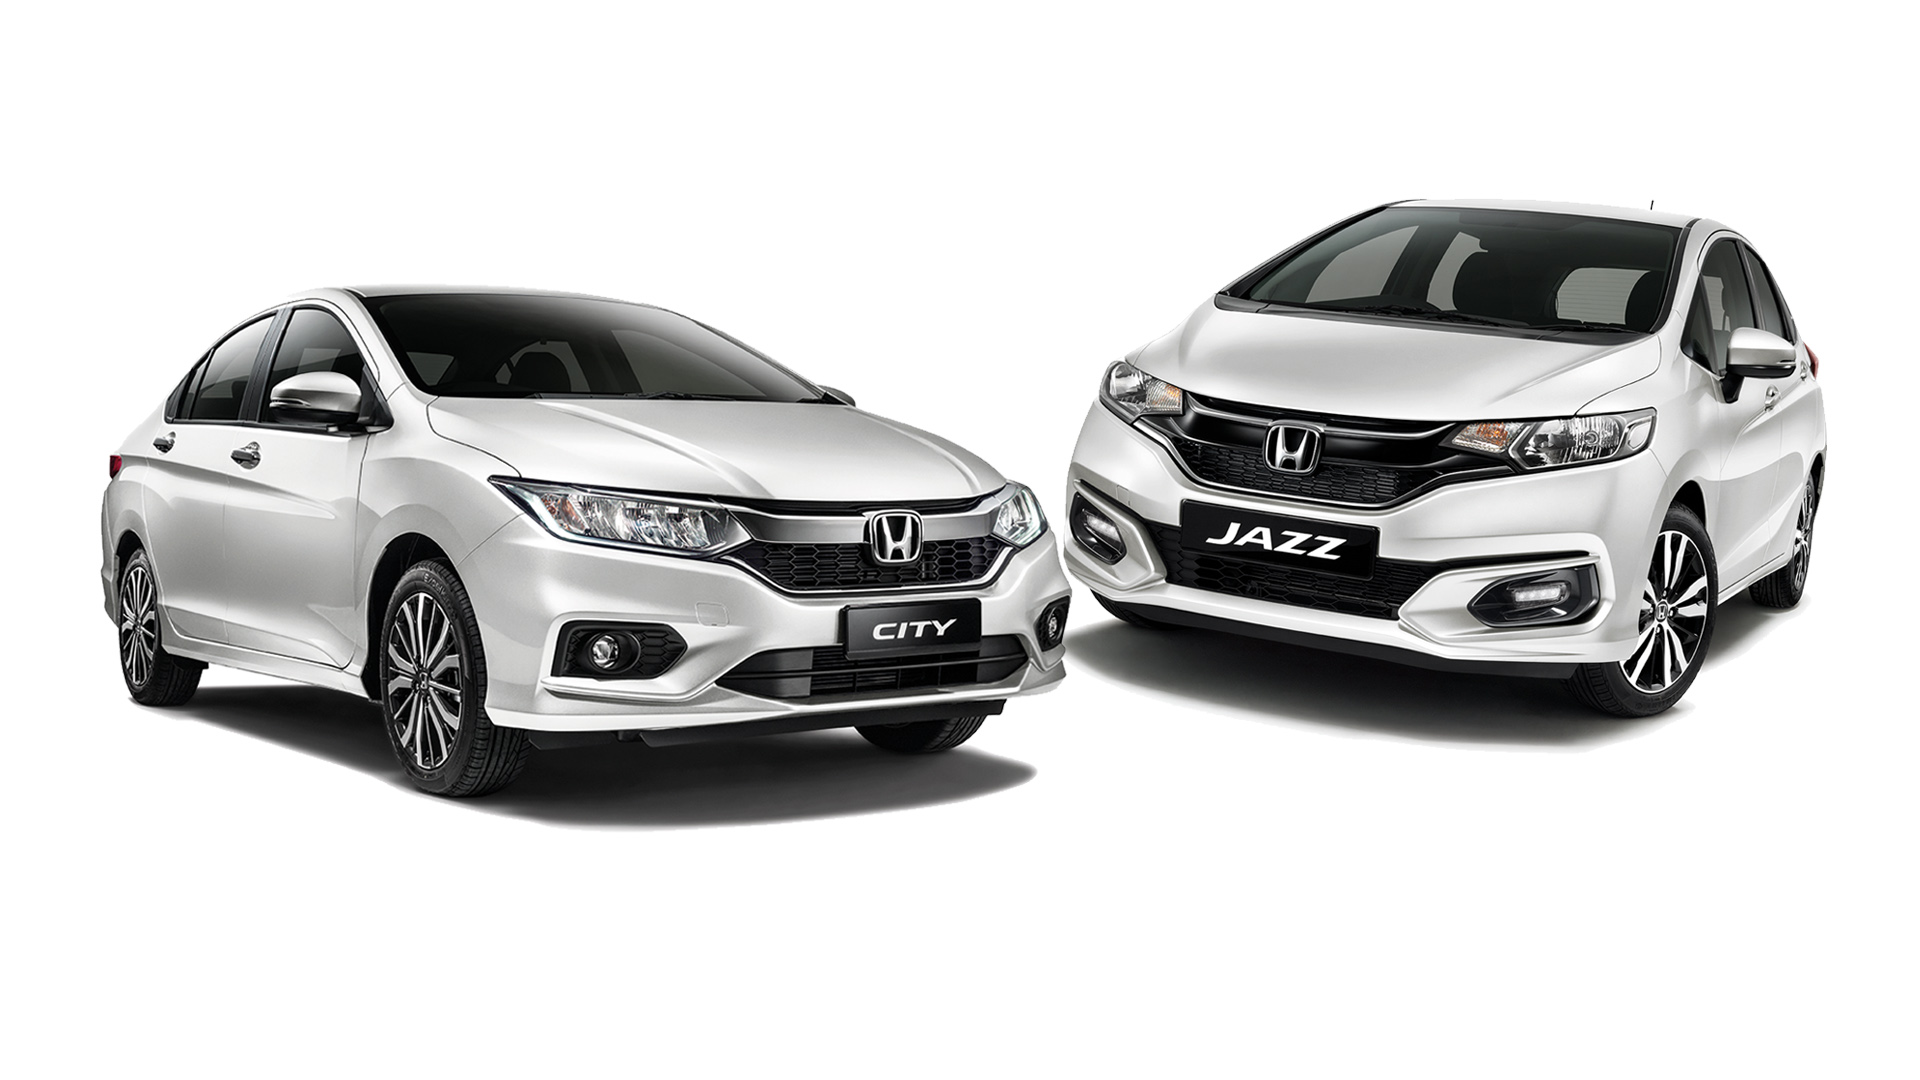 Honda Malaysia Sdn Bhd HMSB Has Announced That The Jazz City BR V And HR Models Will Now Come In A New Premium Colour Option Of White Orchid Pearl